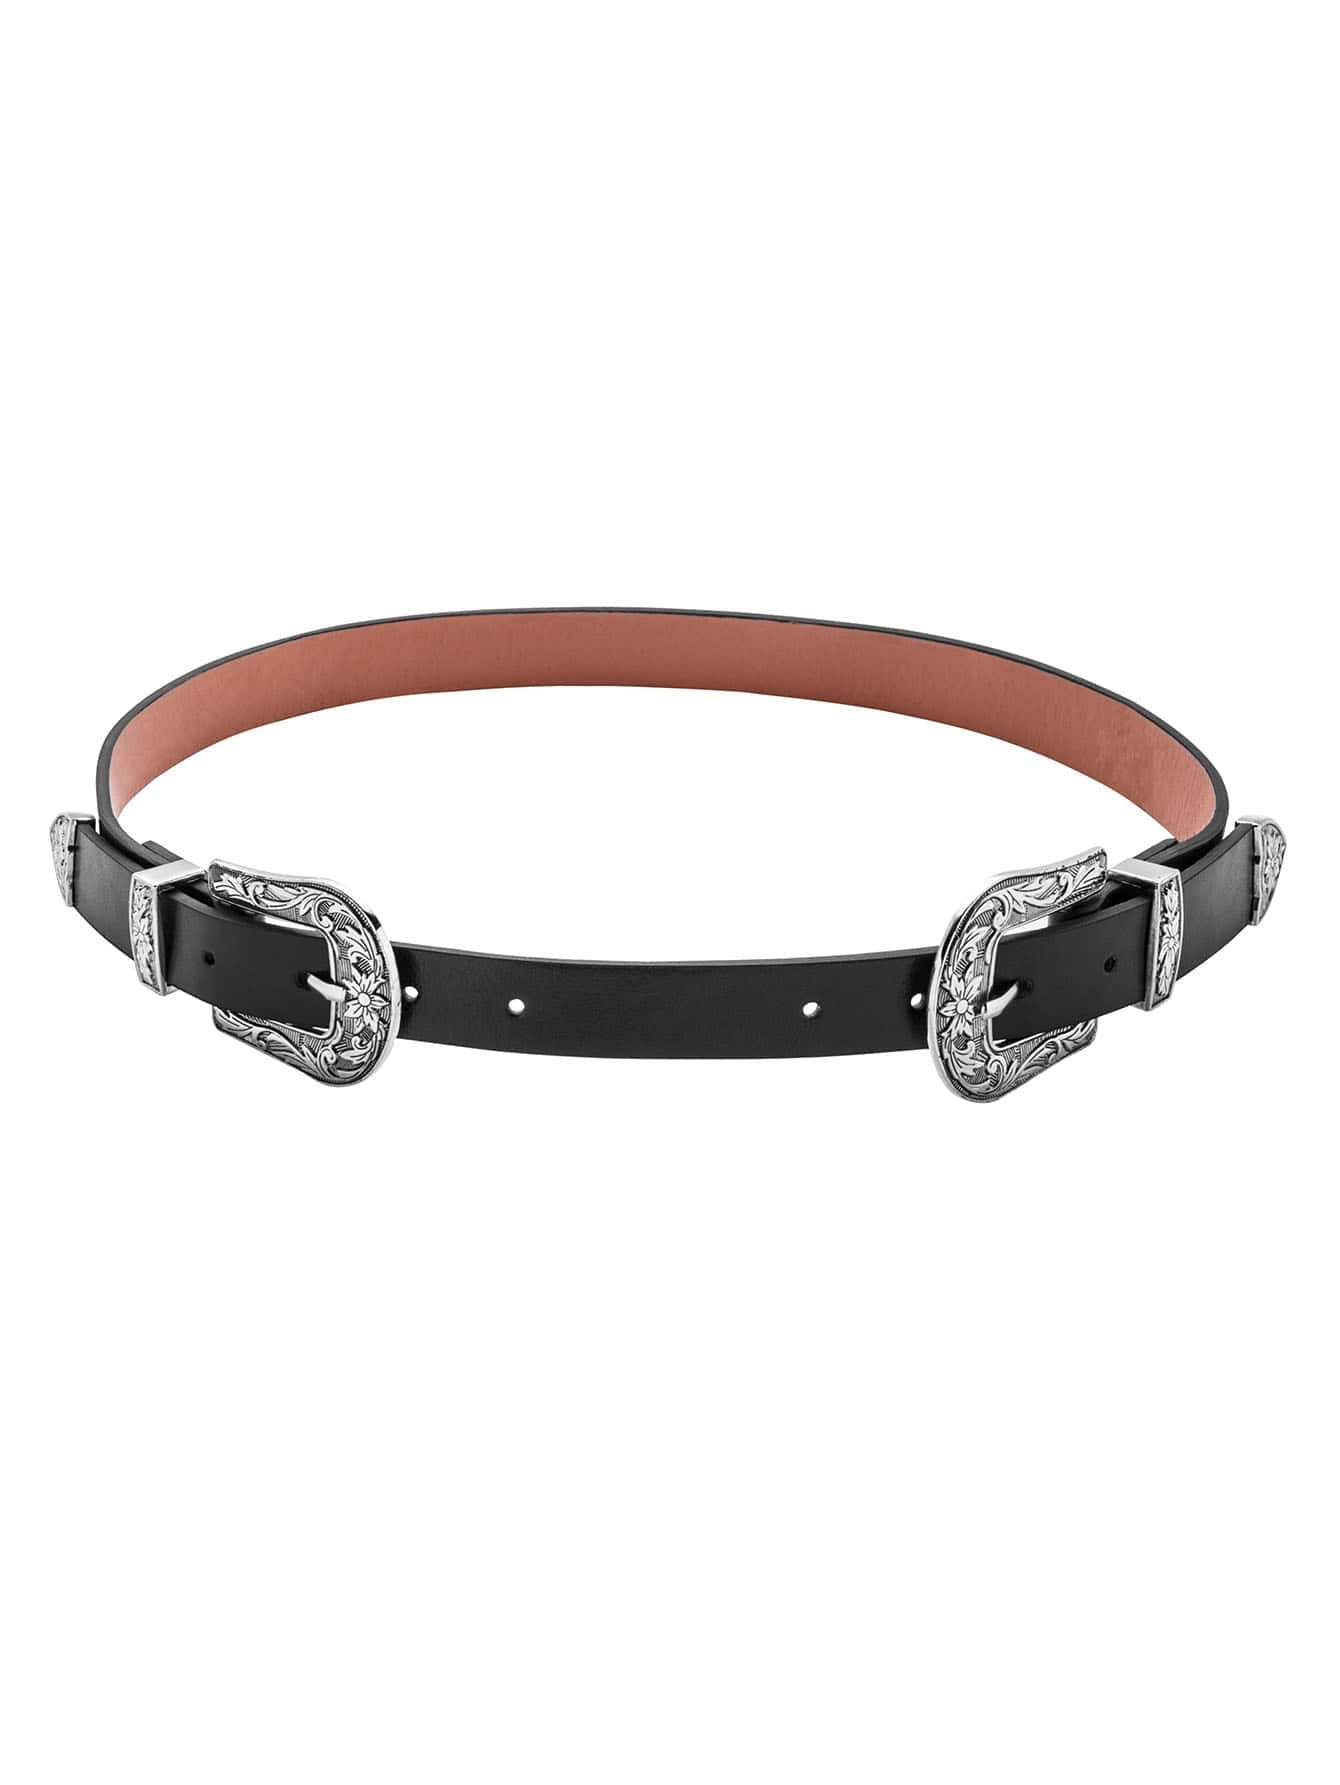 Black Contrast Double Carved Buckle BeltBlack Contrast Double Carved Buckle Belt<br><br>color: Black<br>size: None